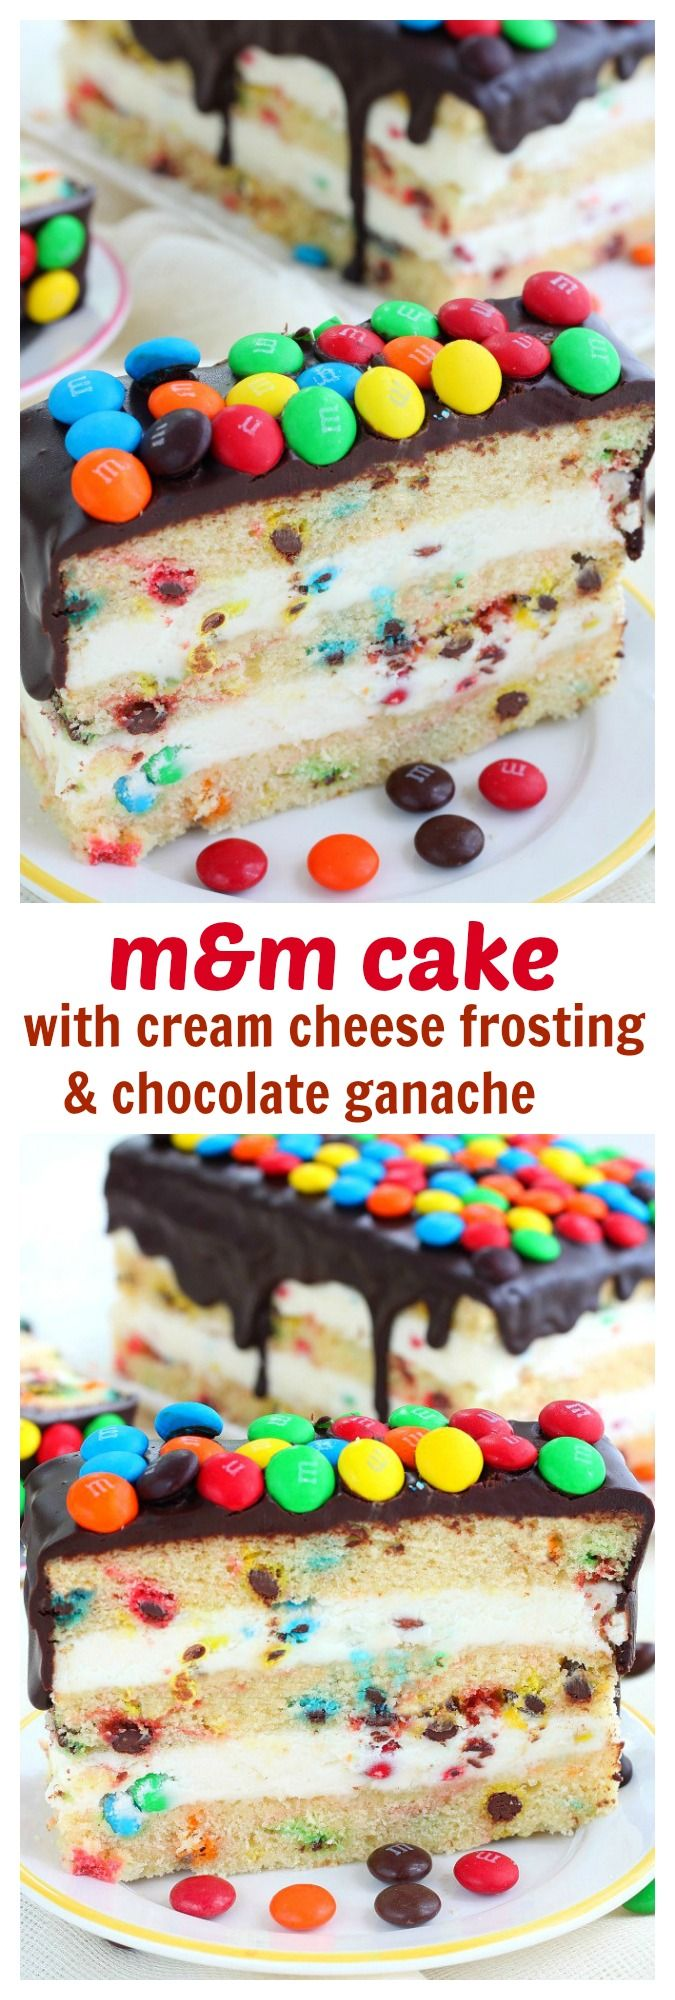 Love M&M'S? You're gonna love this M&M'S cake! Incredible simple to make, loaded with candy and topped with a smooth ganache and more candies! It's a M&M's paradise cake!